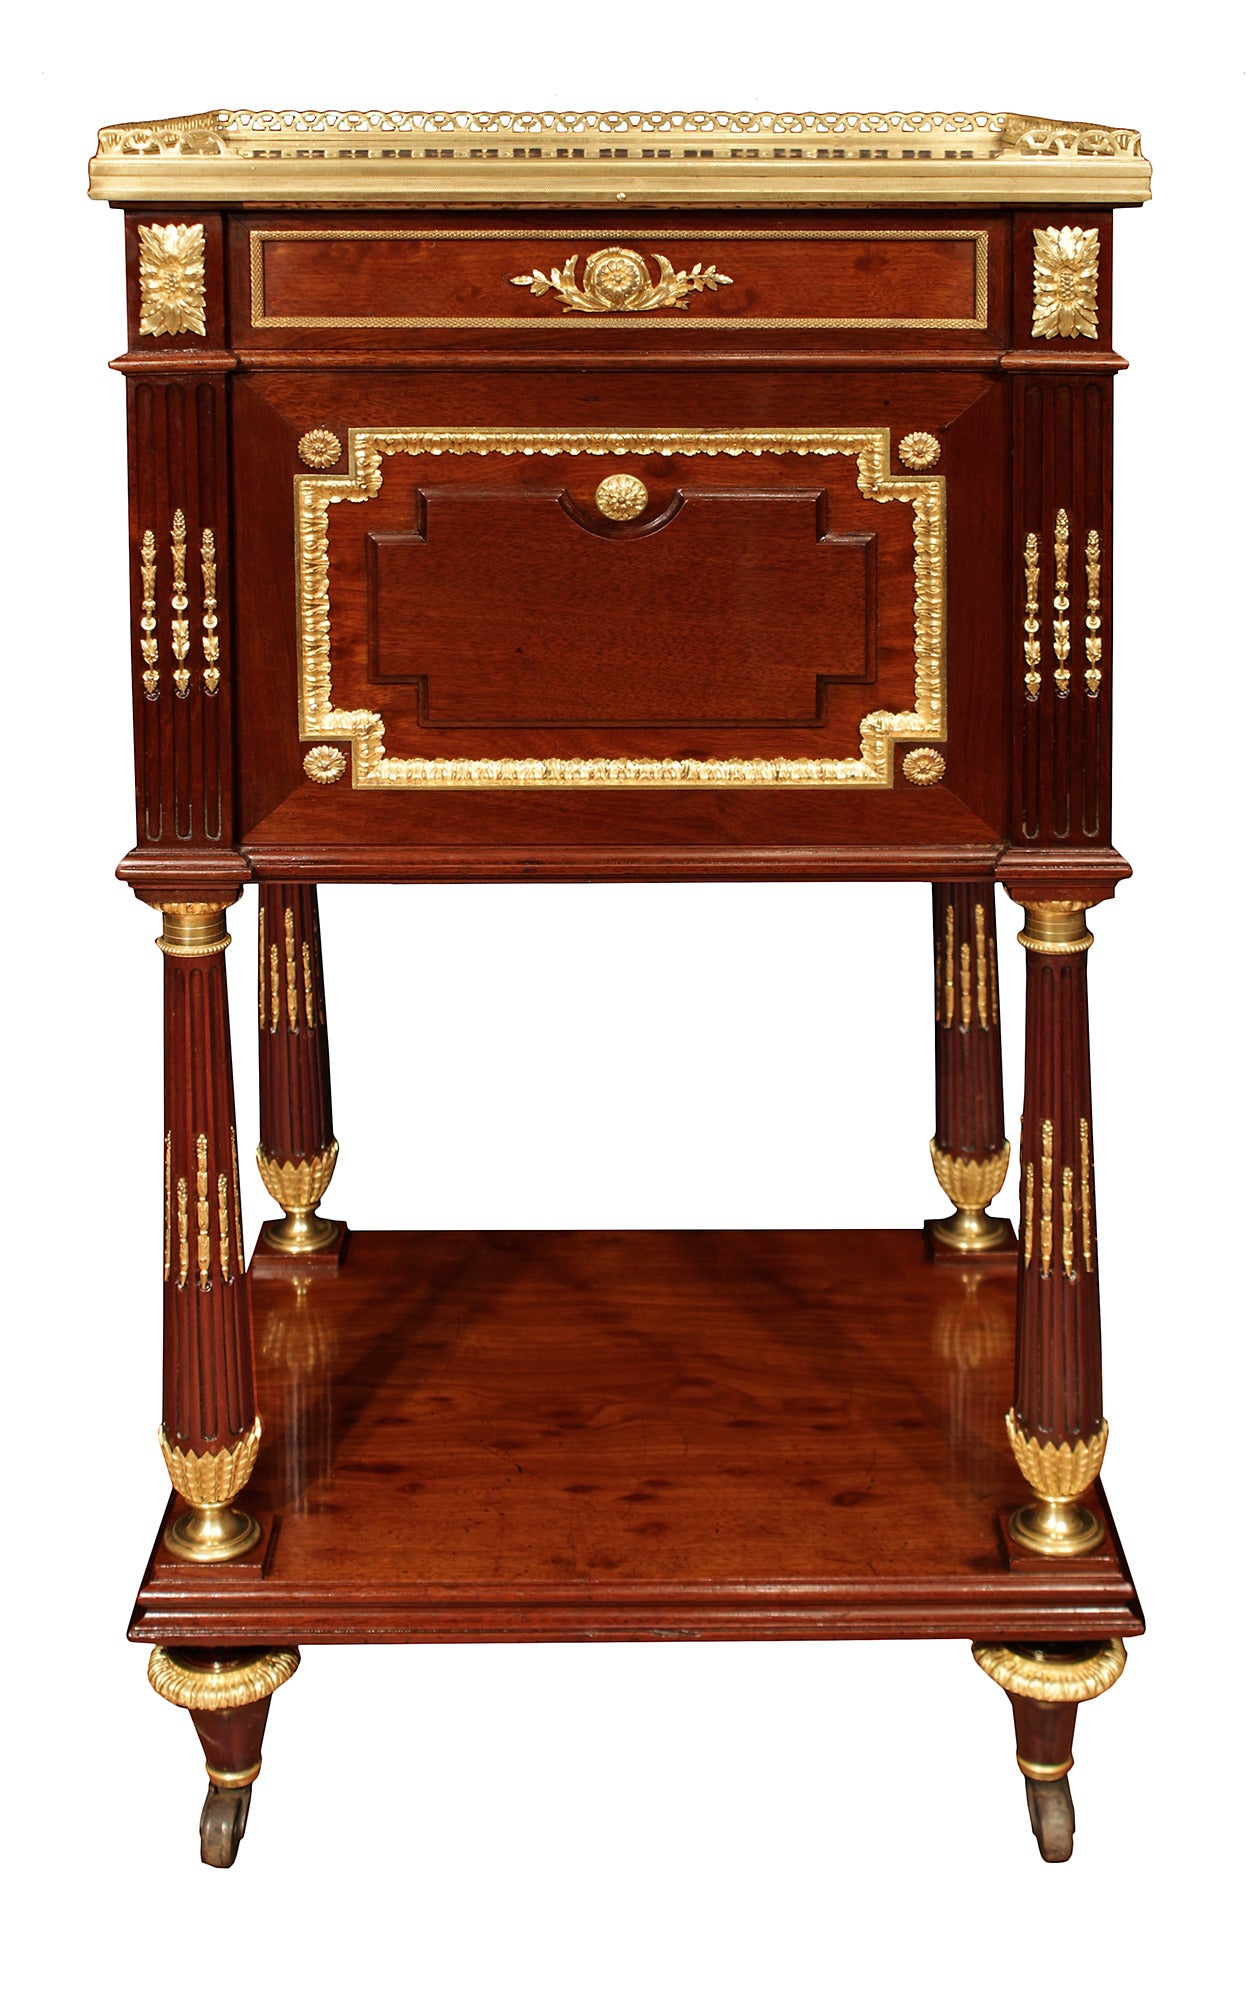 french 19th century louis xvi style mouchette mahogany bed signed maison millet at 1stdibs. Black Bedroom Furniture Sets. Home Design Ideas